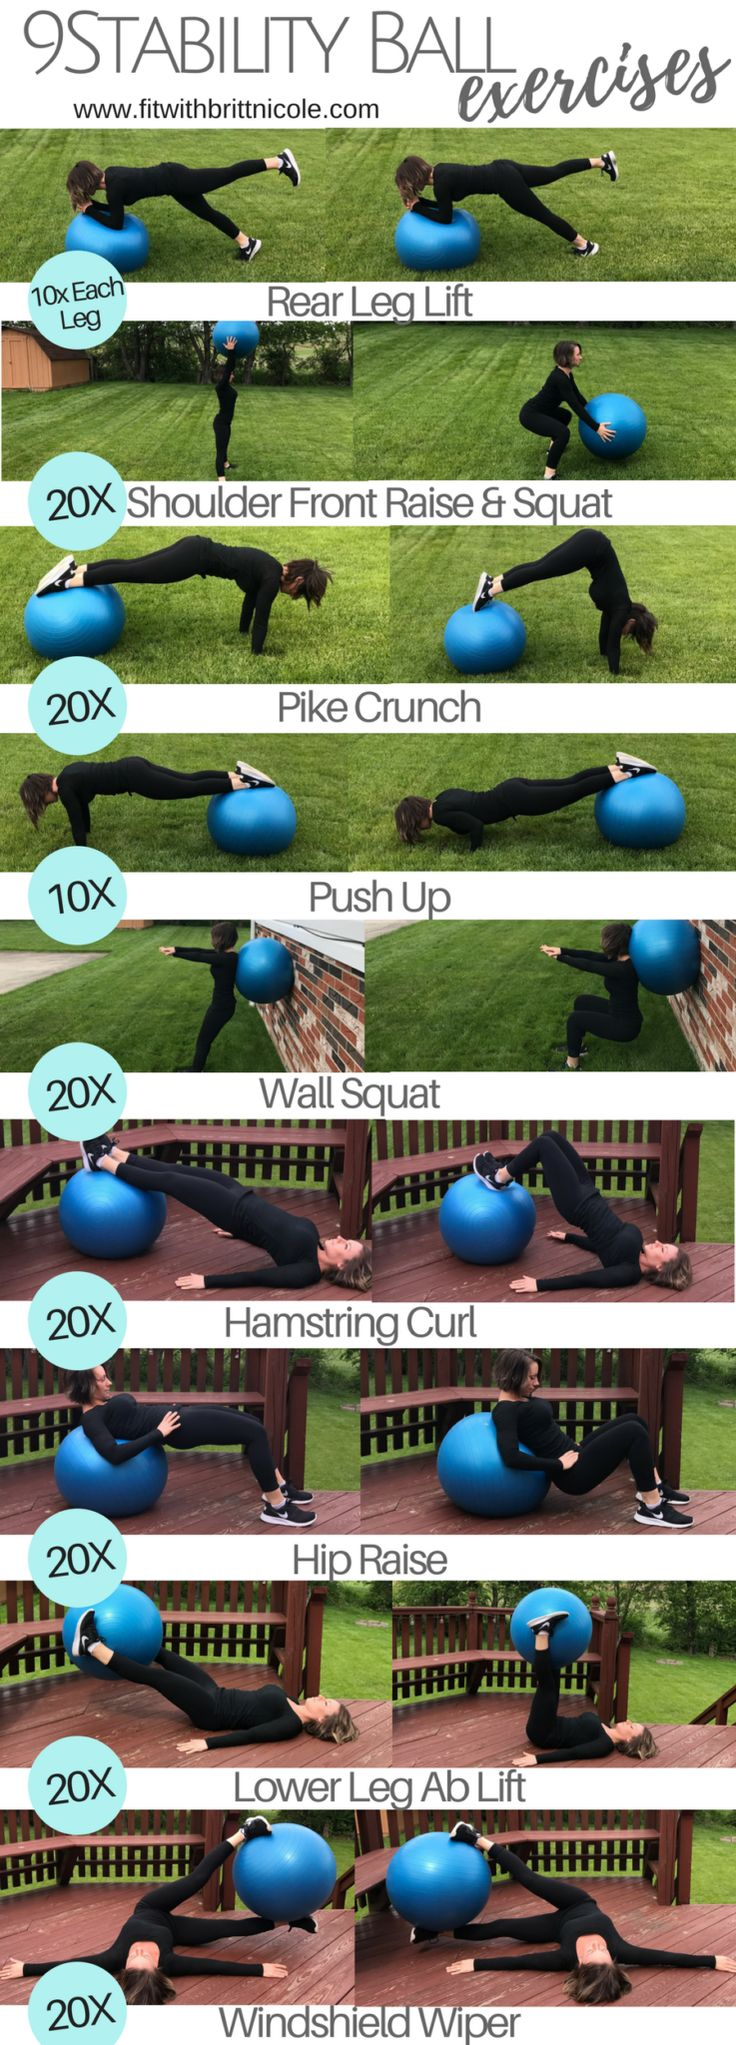 884 best health nut images on Pinterest | Exercise workouts ...